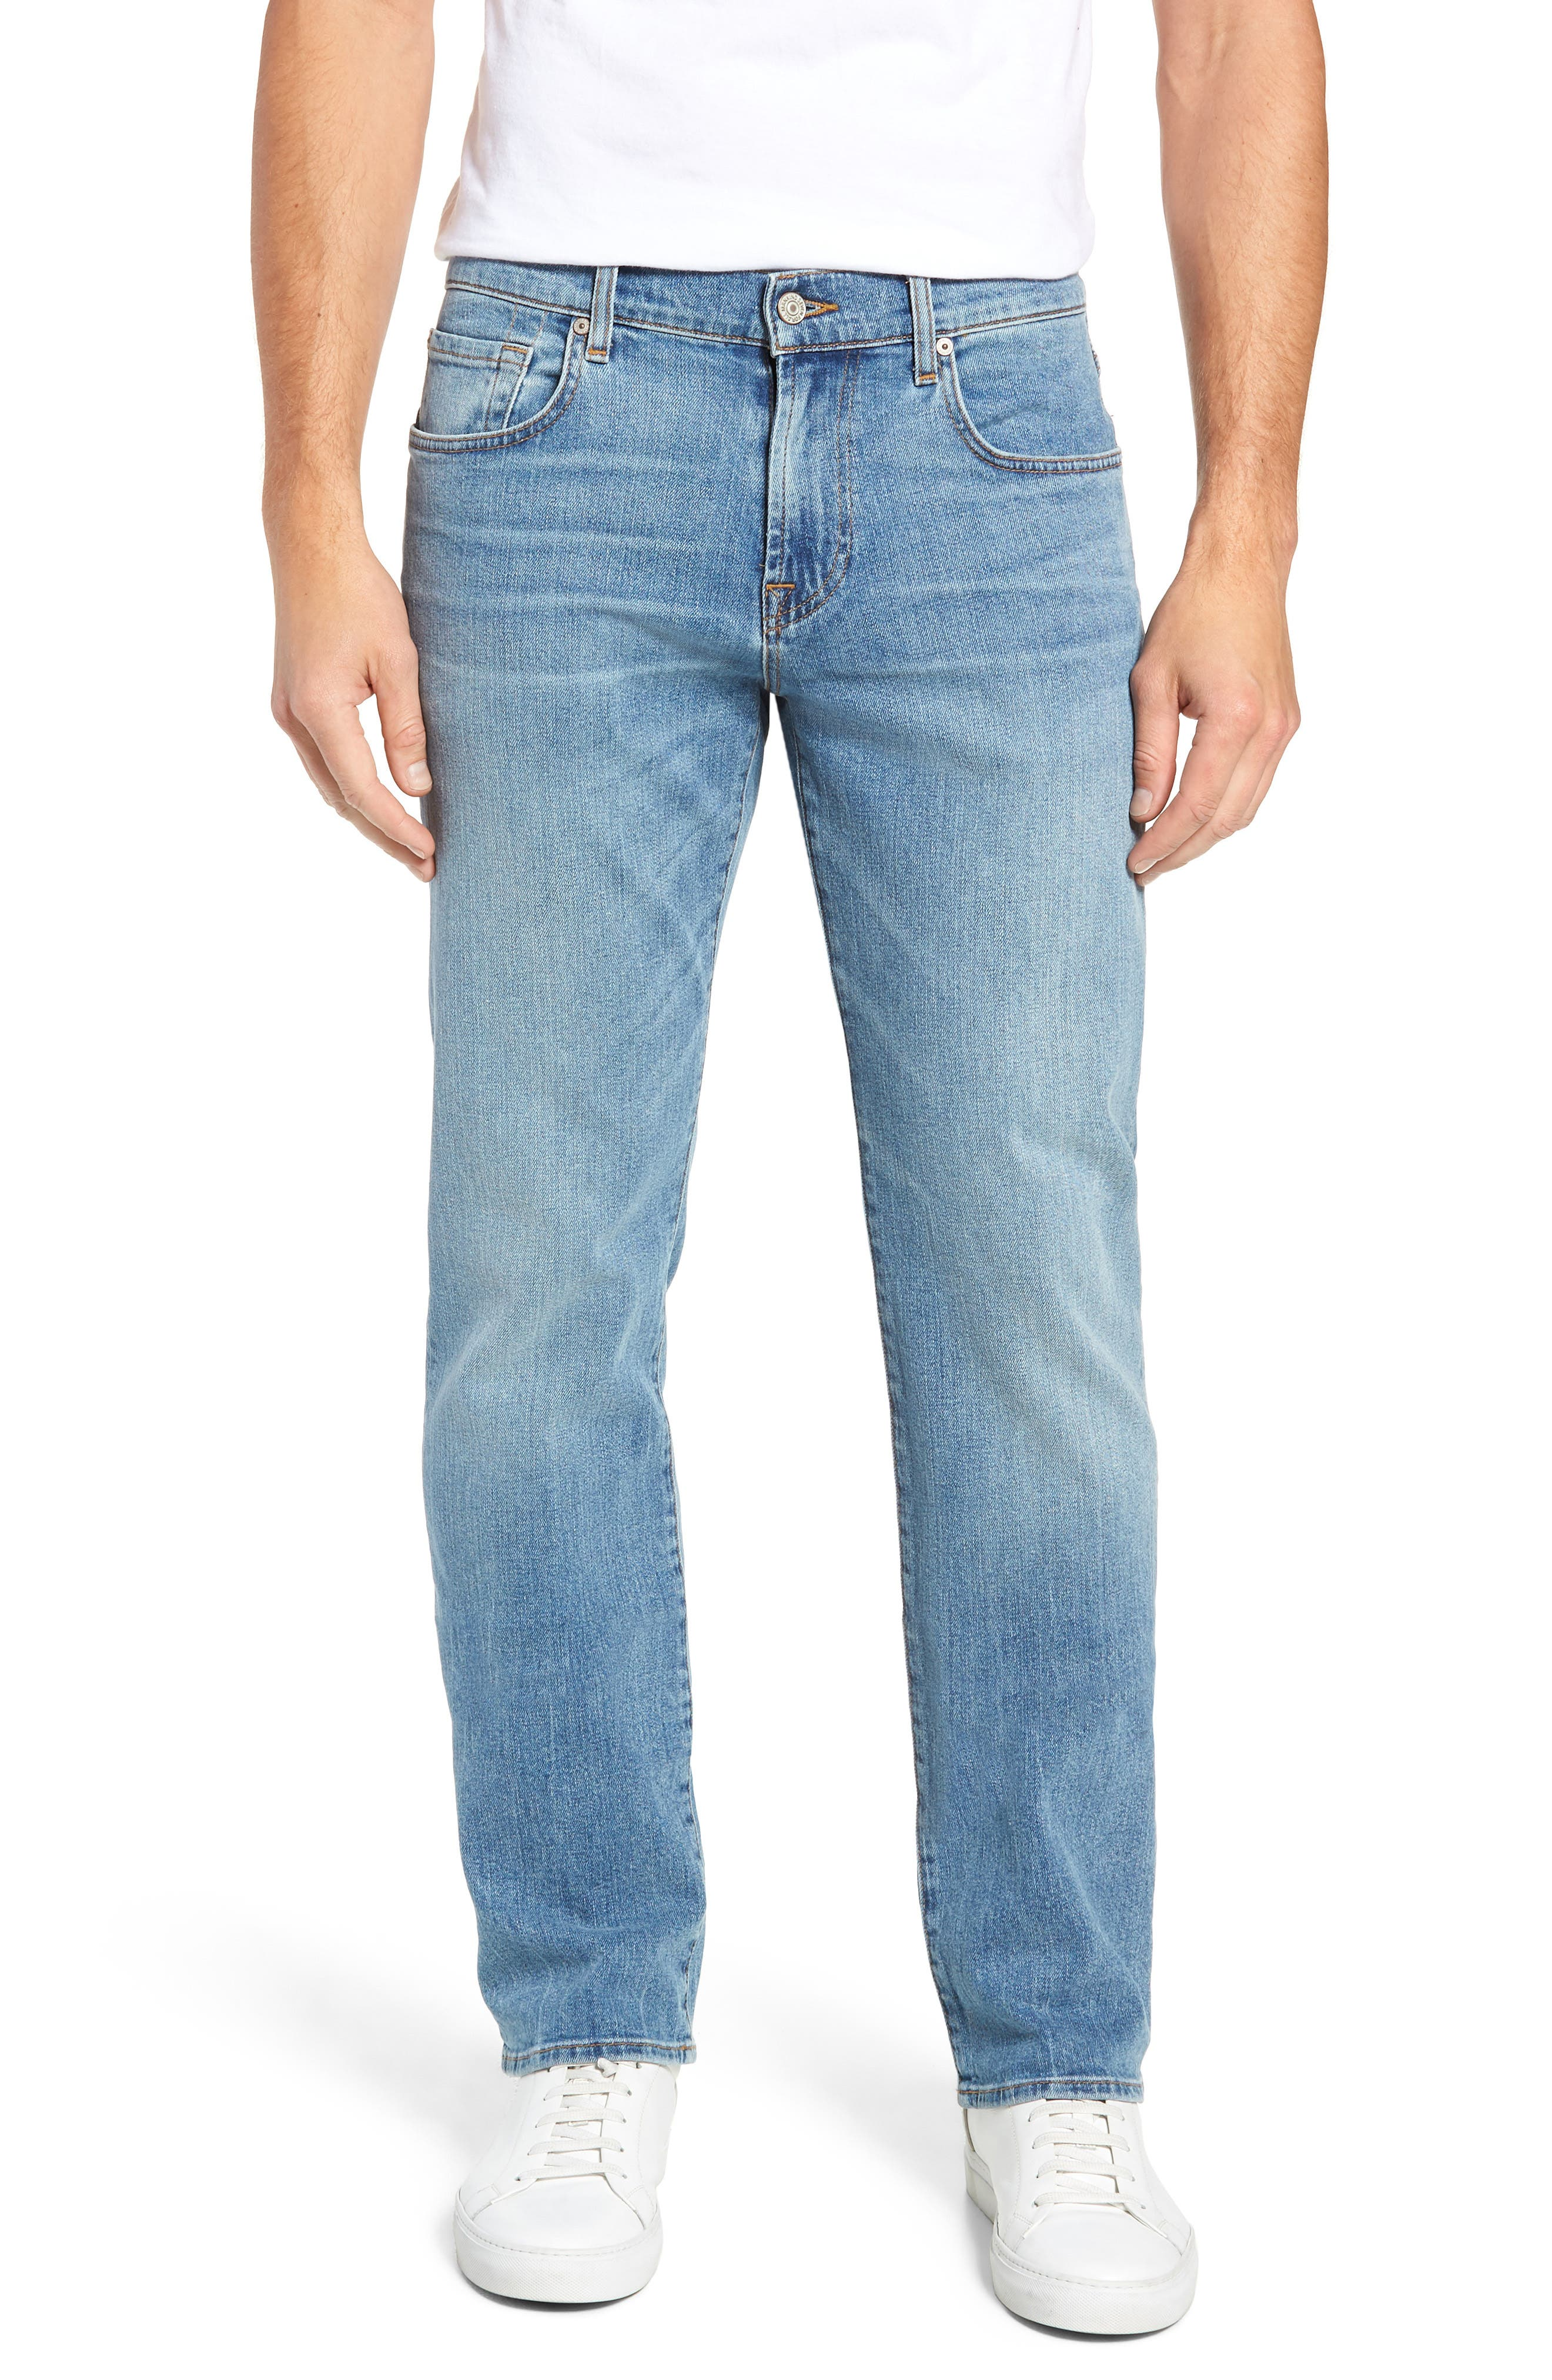 Austyn Relaxed Fit Jeans,                             Main thumbnail 1, color,                             PROSE